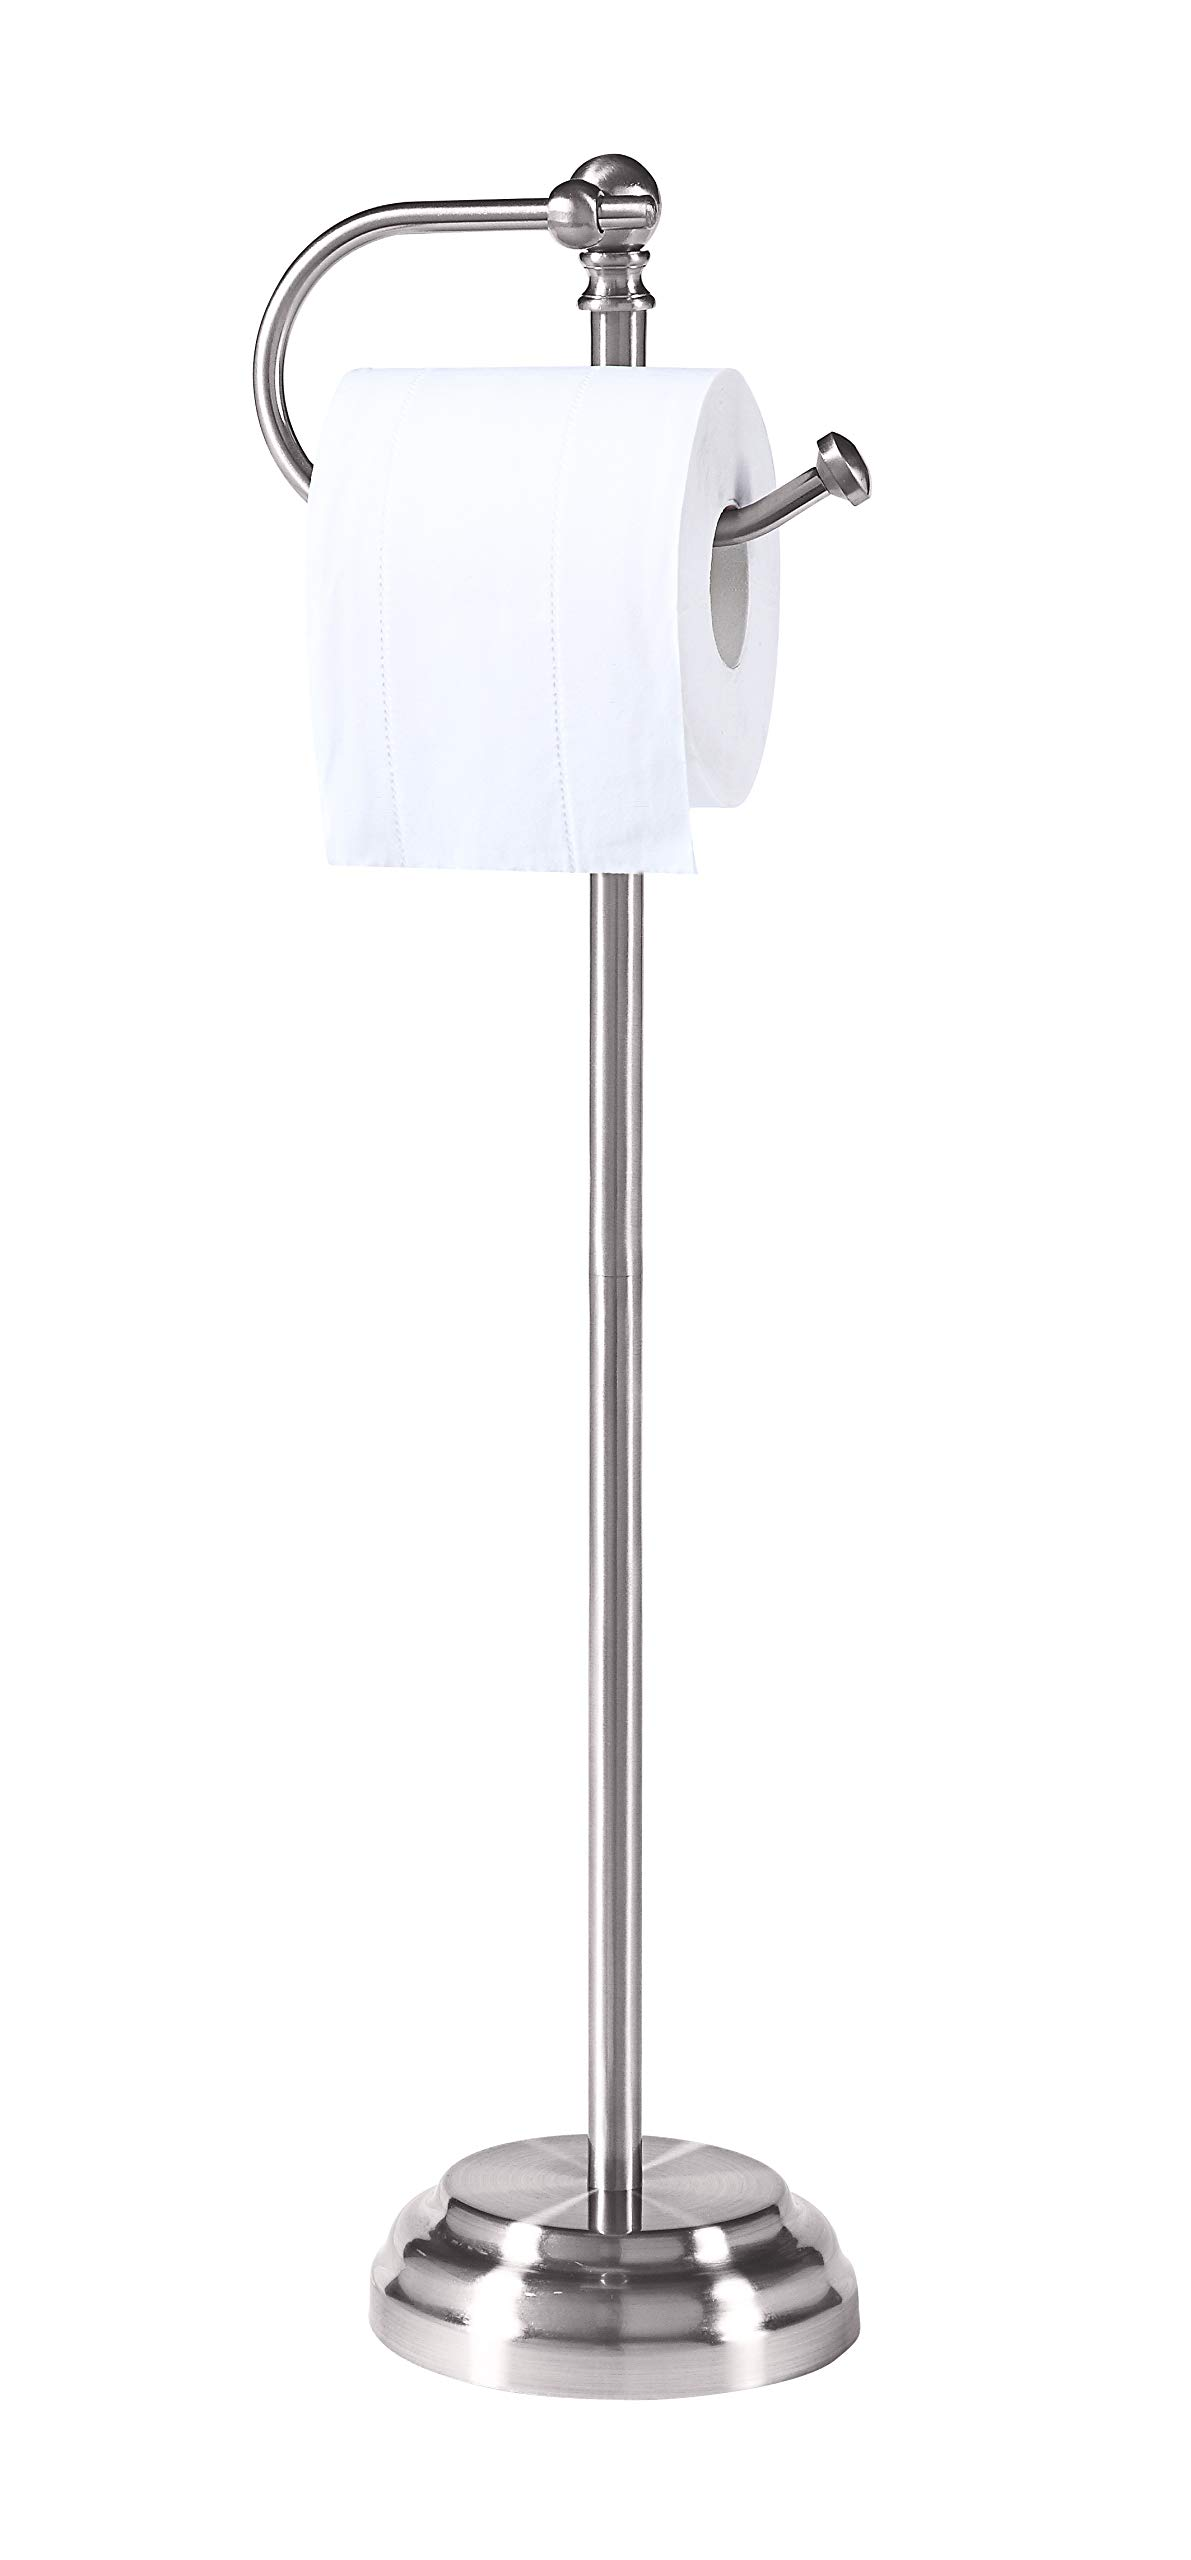 SunnyPoint Classic Bathroom Free Standing Toilet Tissue Paper Roll Holder Stand, Chrome Brush Finish